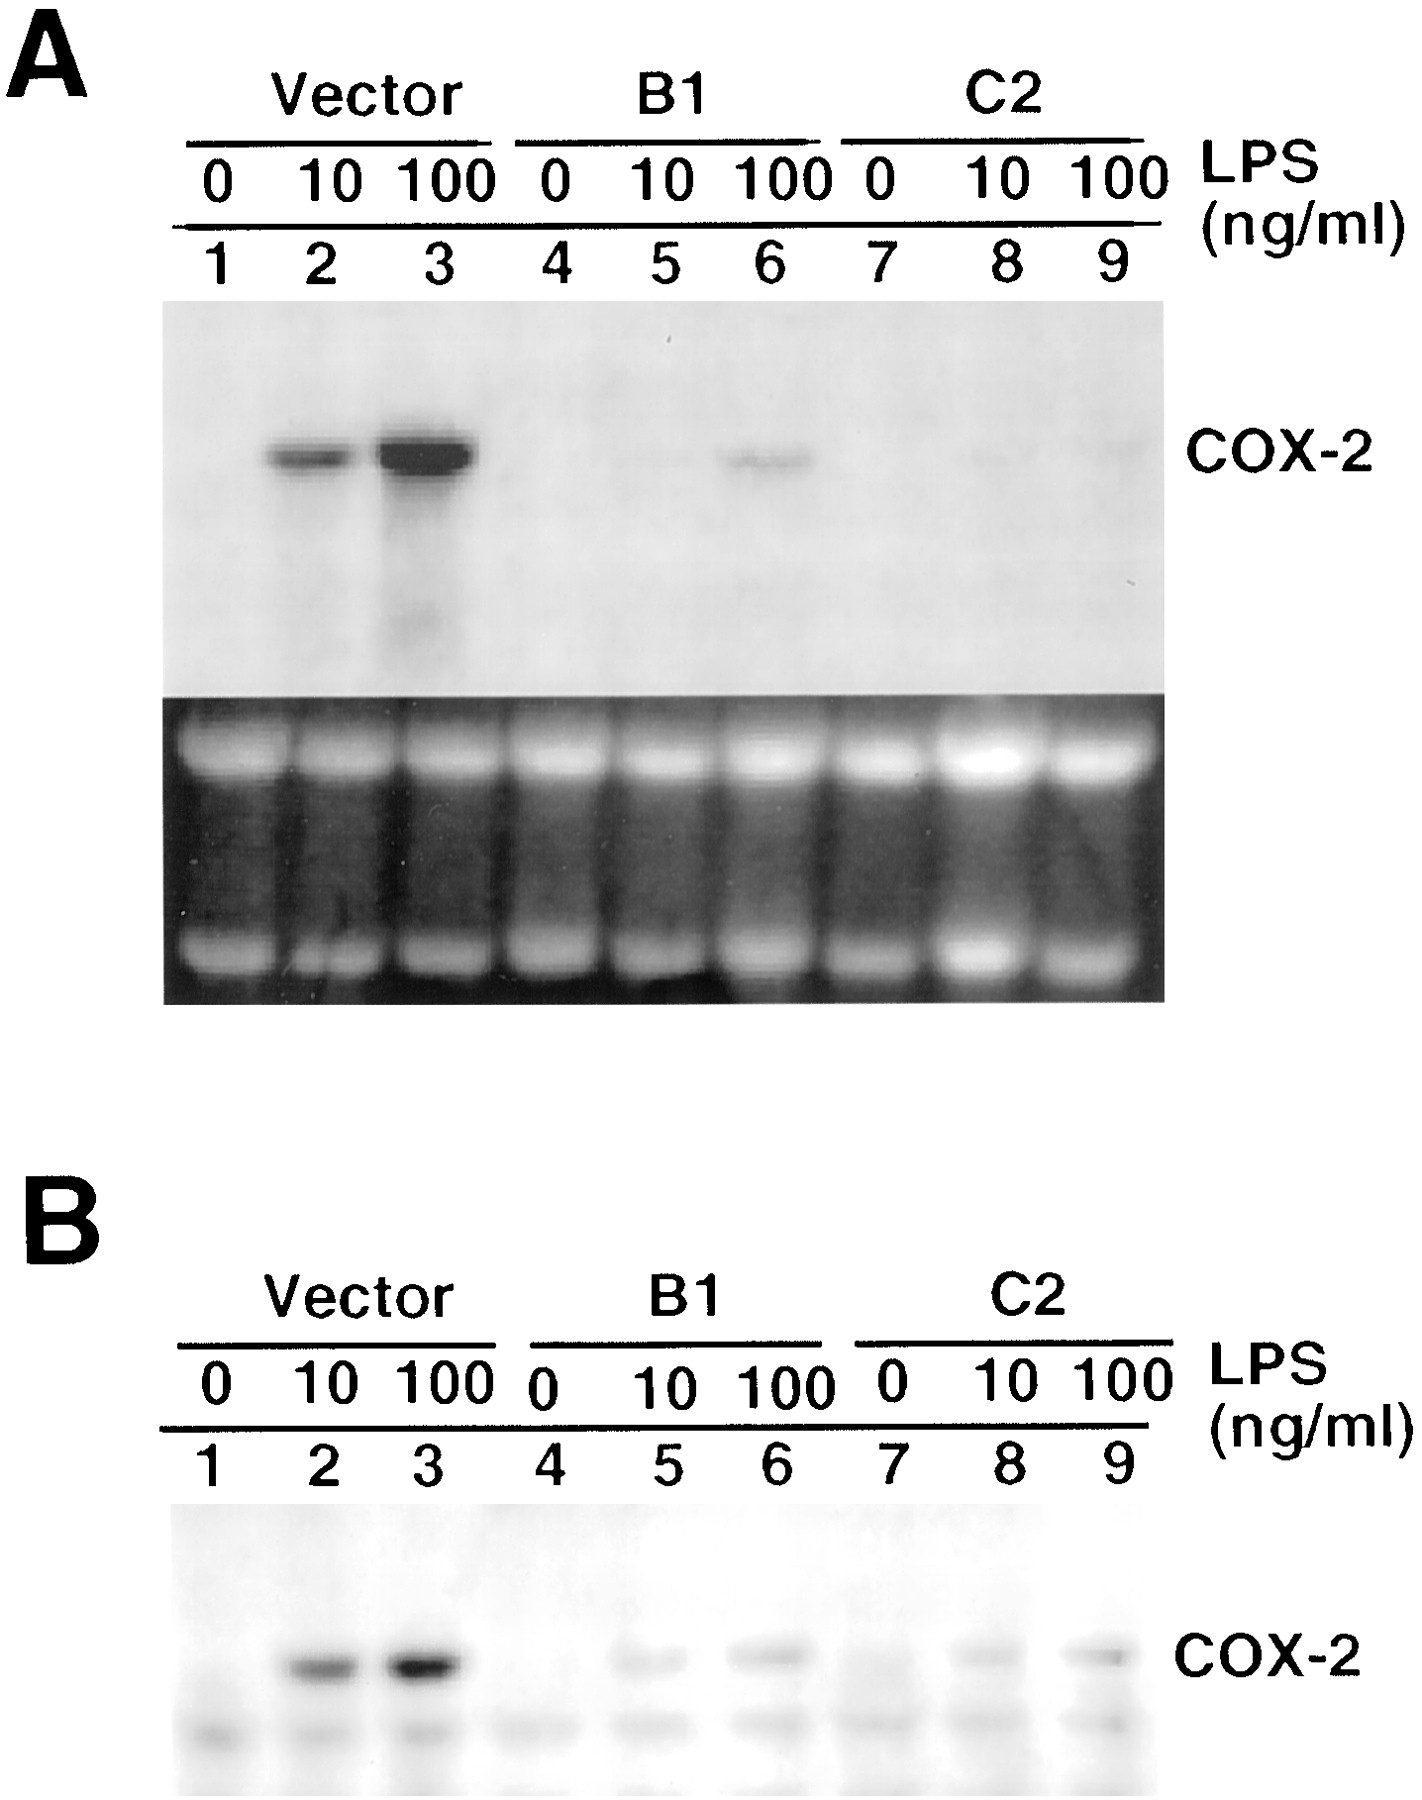 the cyclooxygenase 2 essay In the project helicobacter pylori induces the synthesis of cyclooxygenase-2 in  human gastric epithelial carcinoma cell line bgc-823, i found in the majorities of .